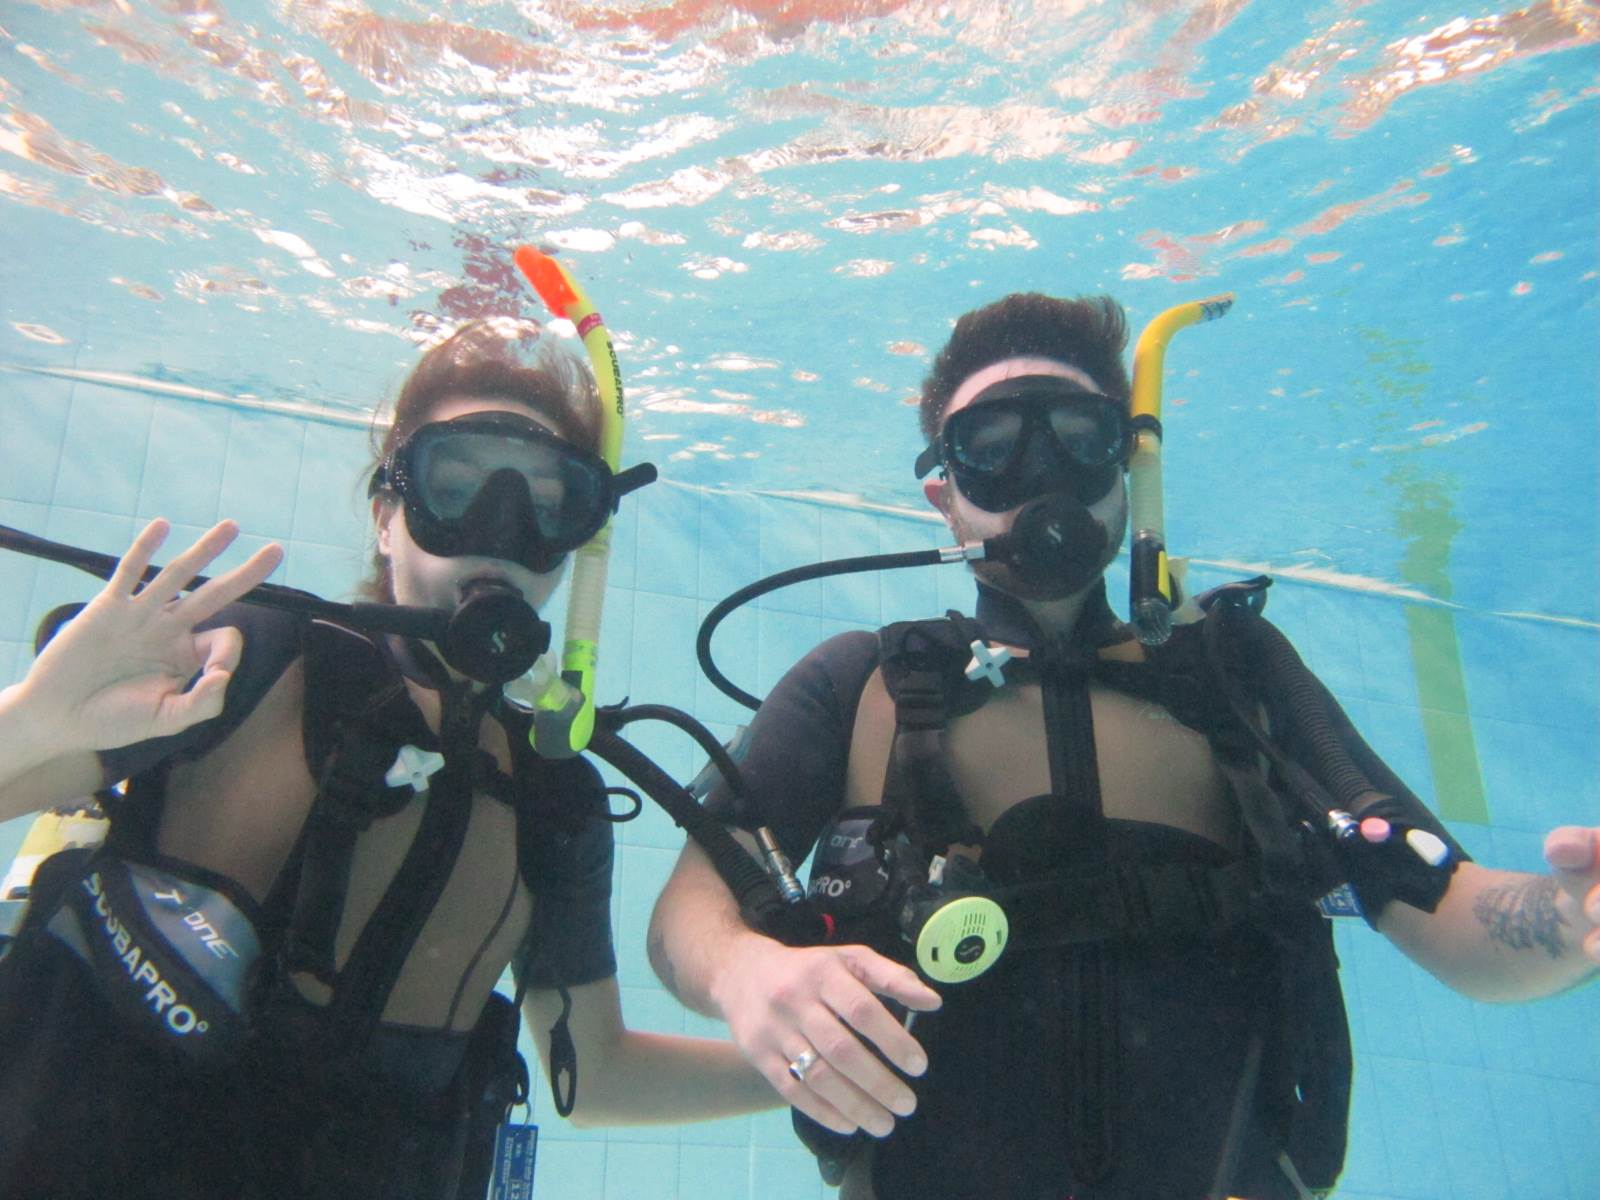 PADI Scuba lessons near Hertford in 2DiVE4's training pools